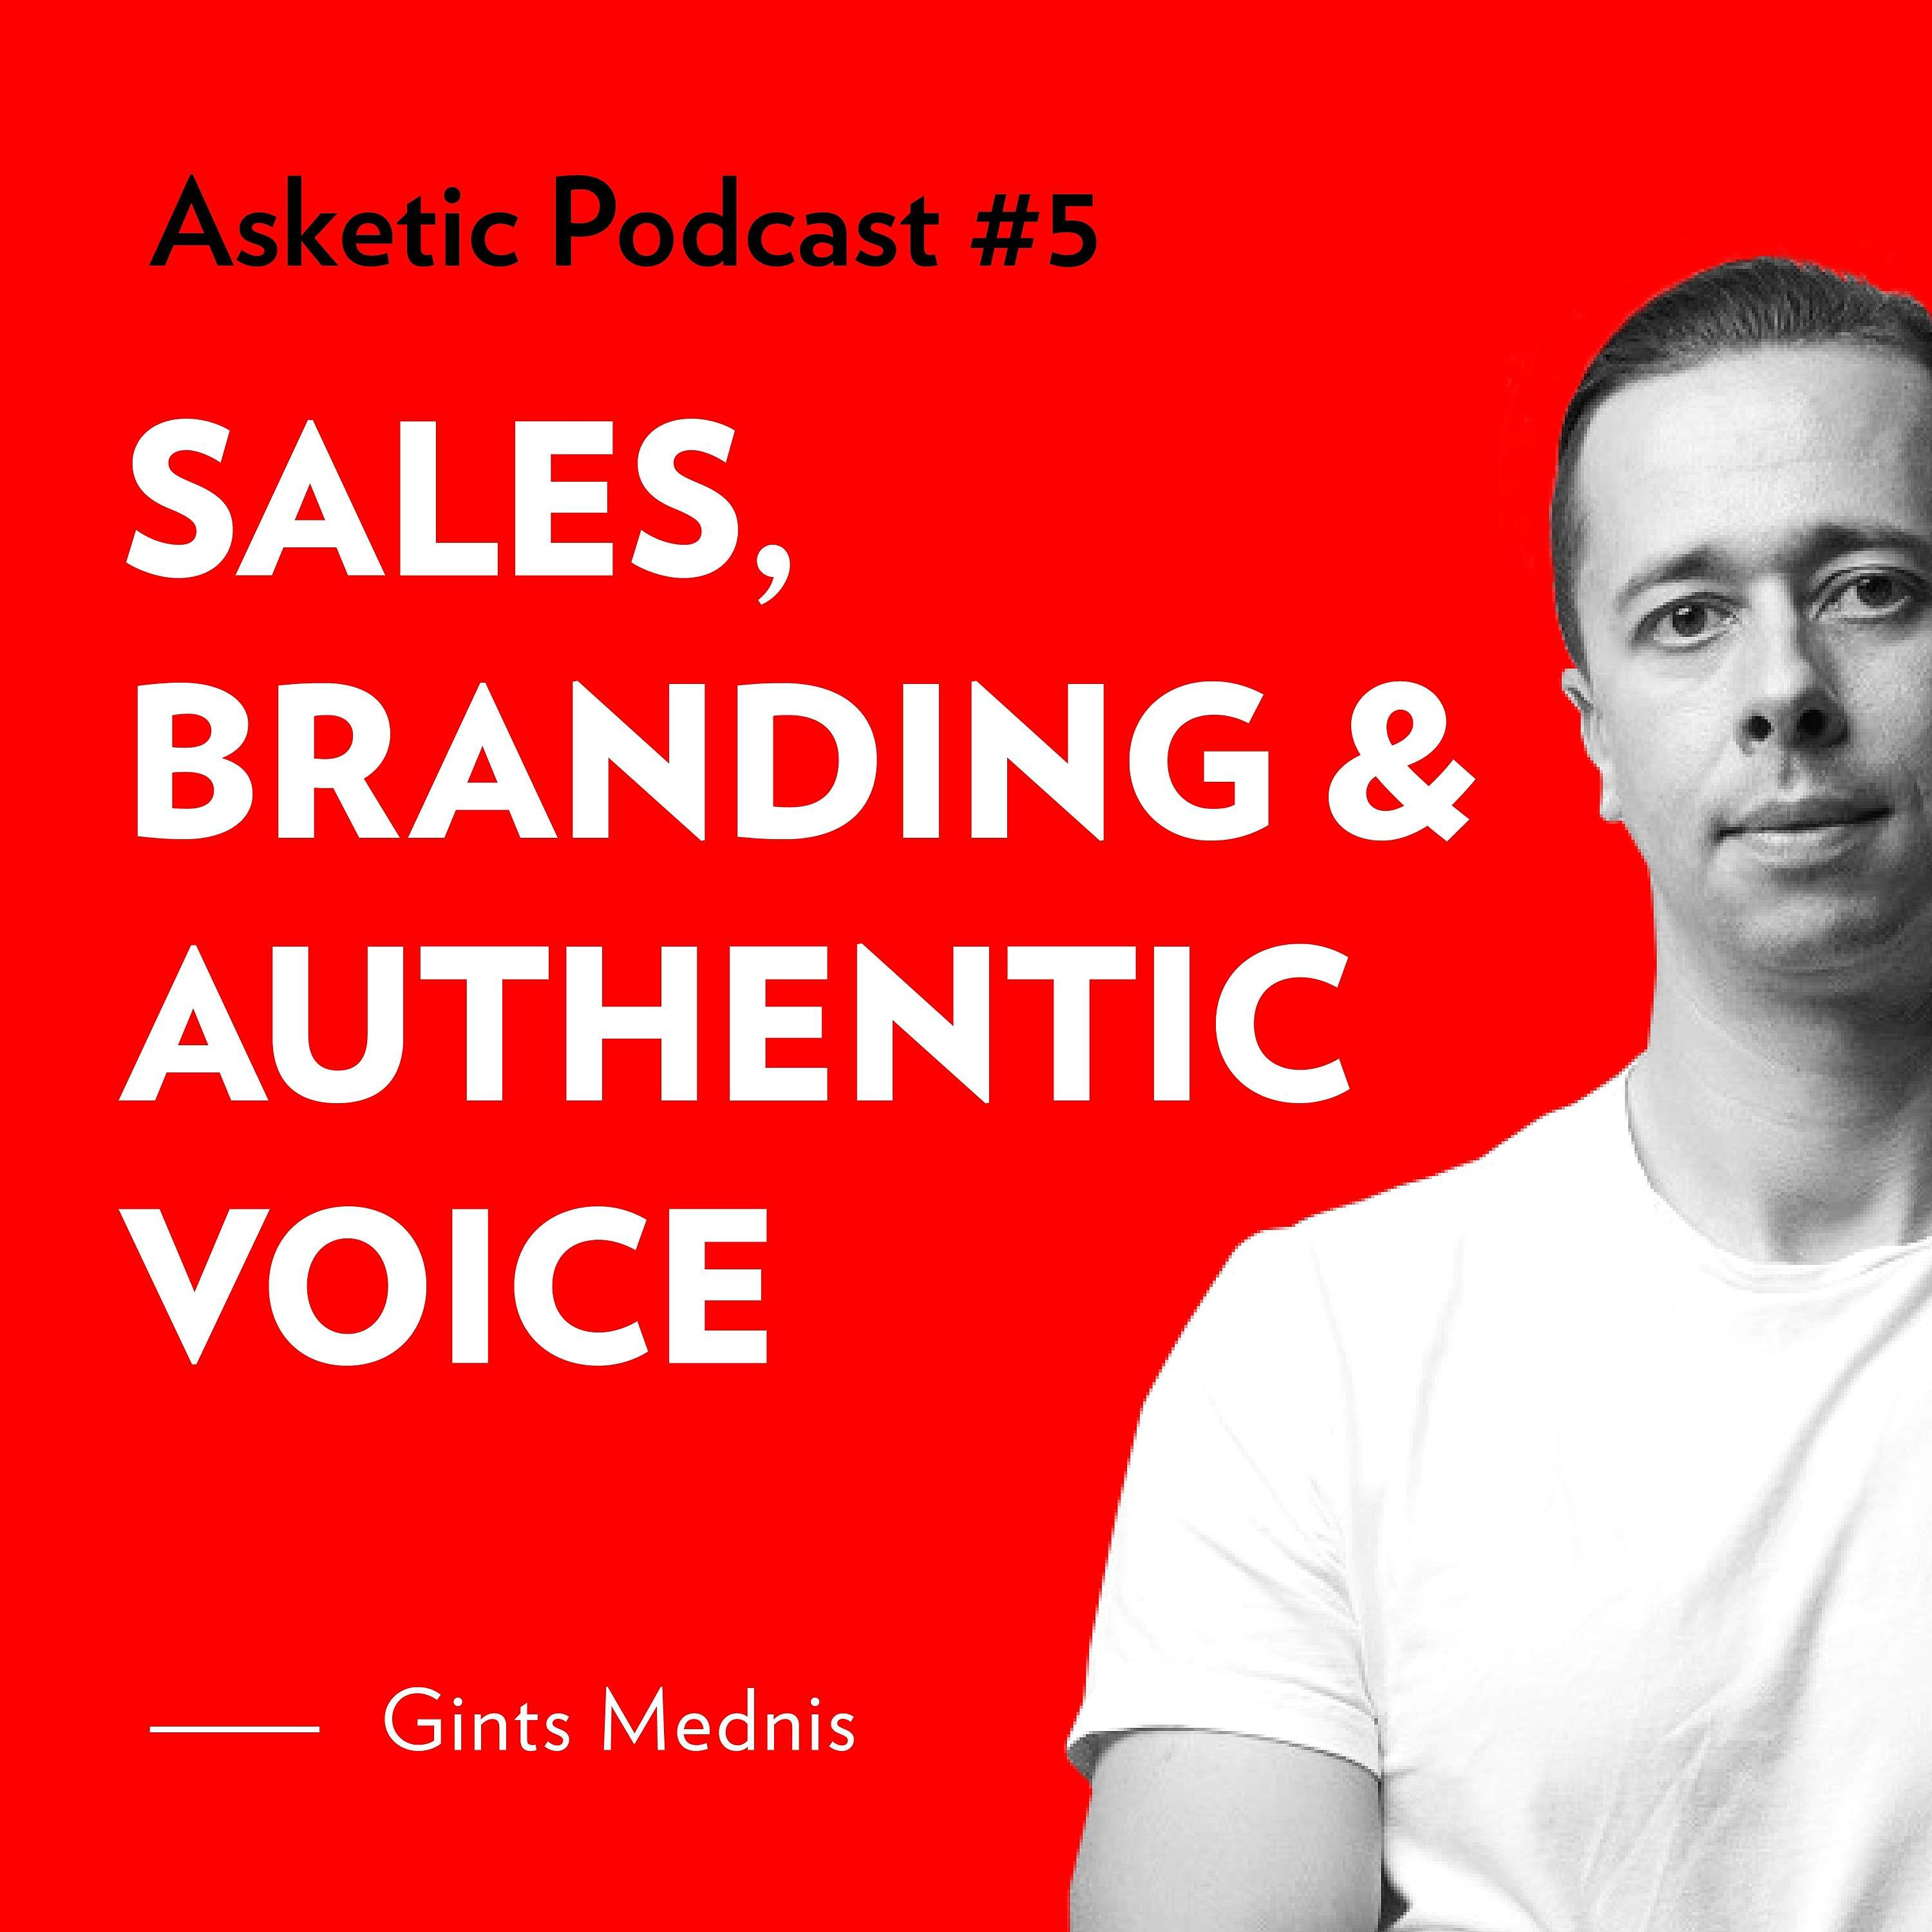 Asketic Podcast #5 Gints Mednis — Sales, Branding & Authentic Voice